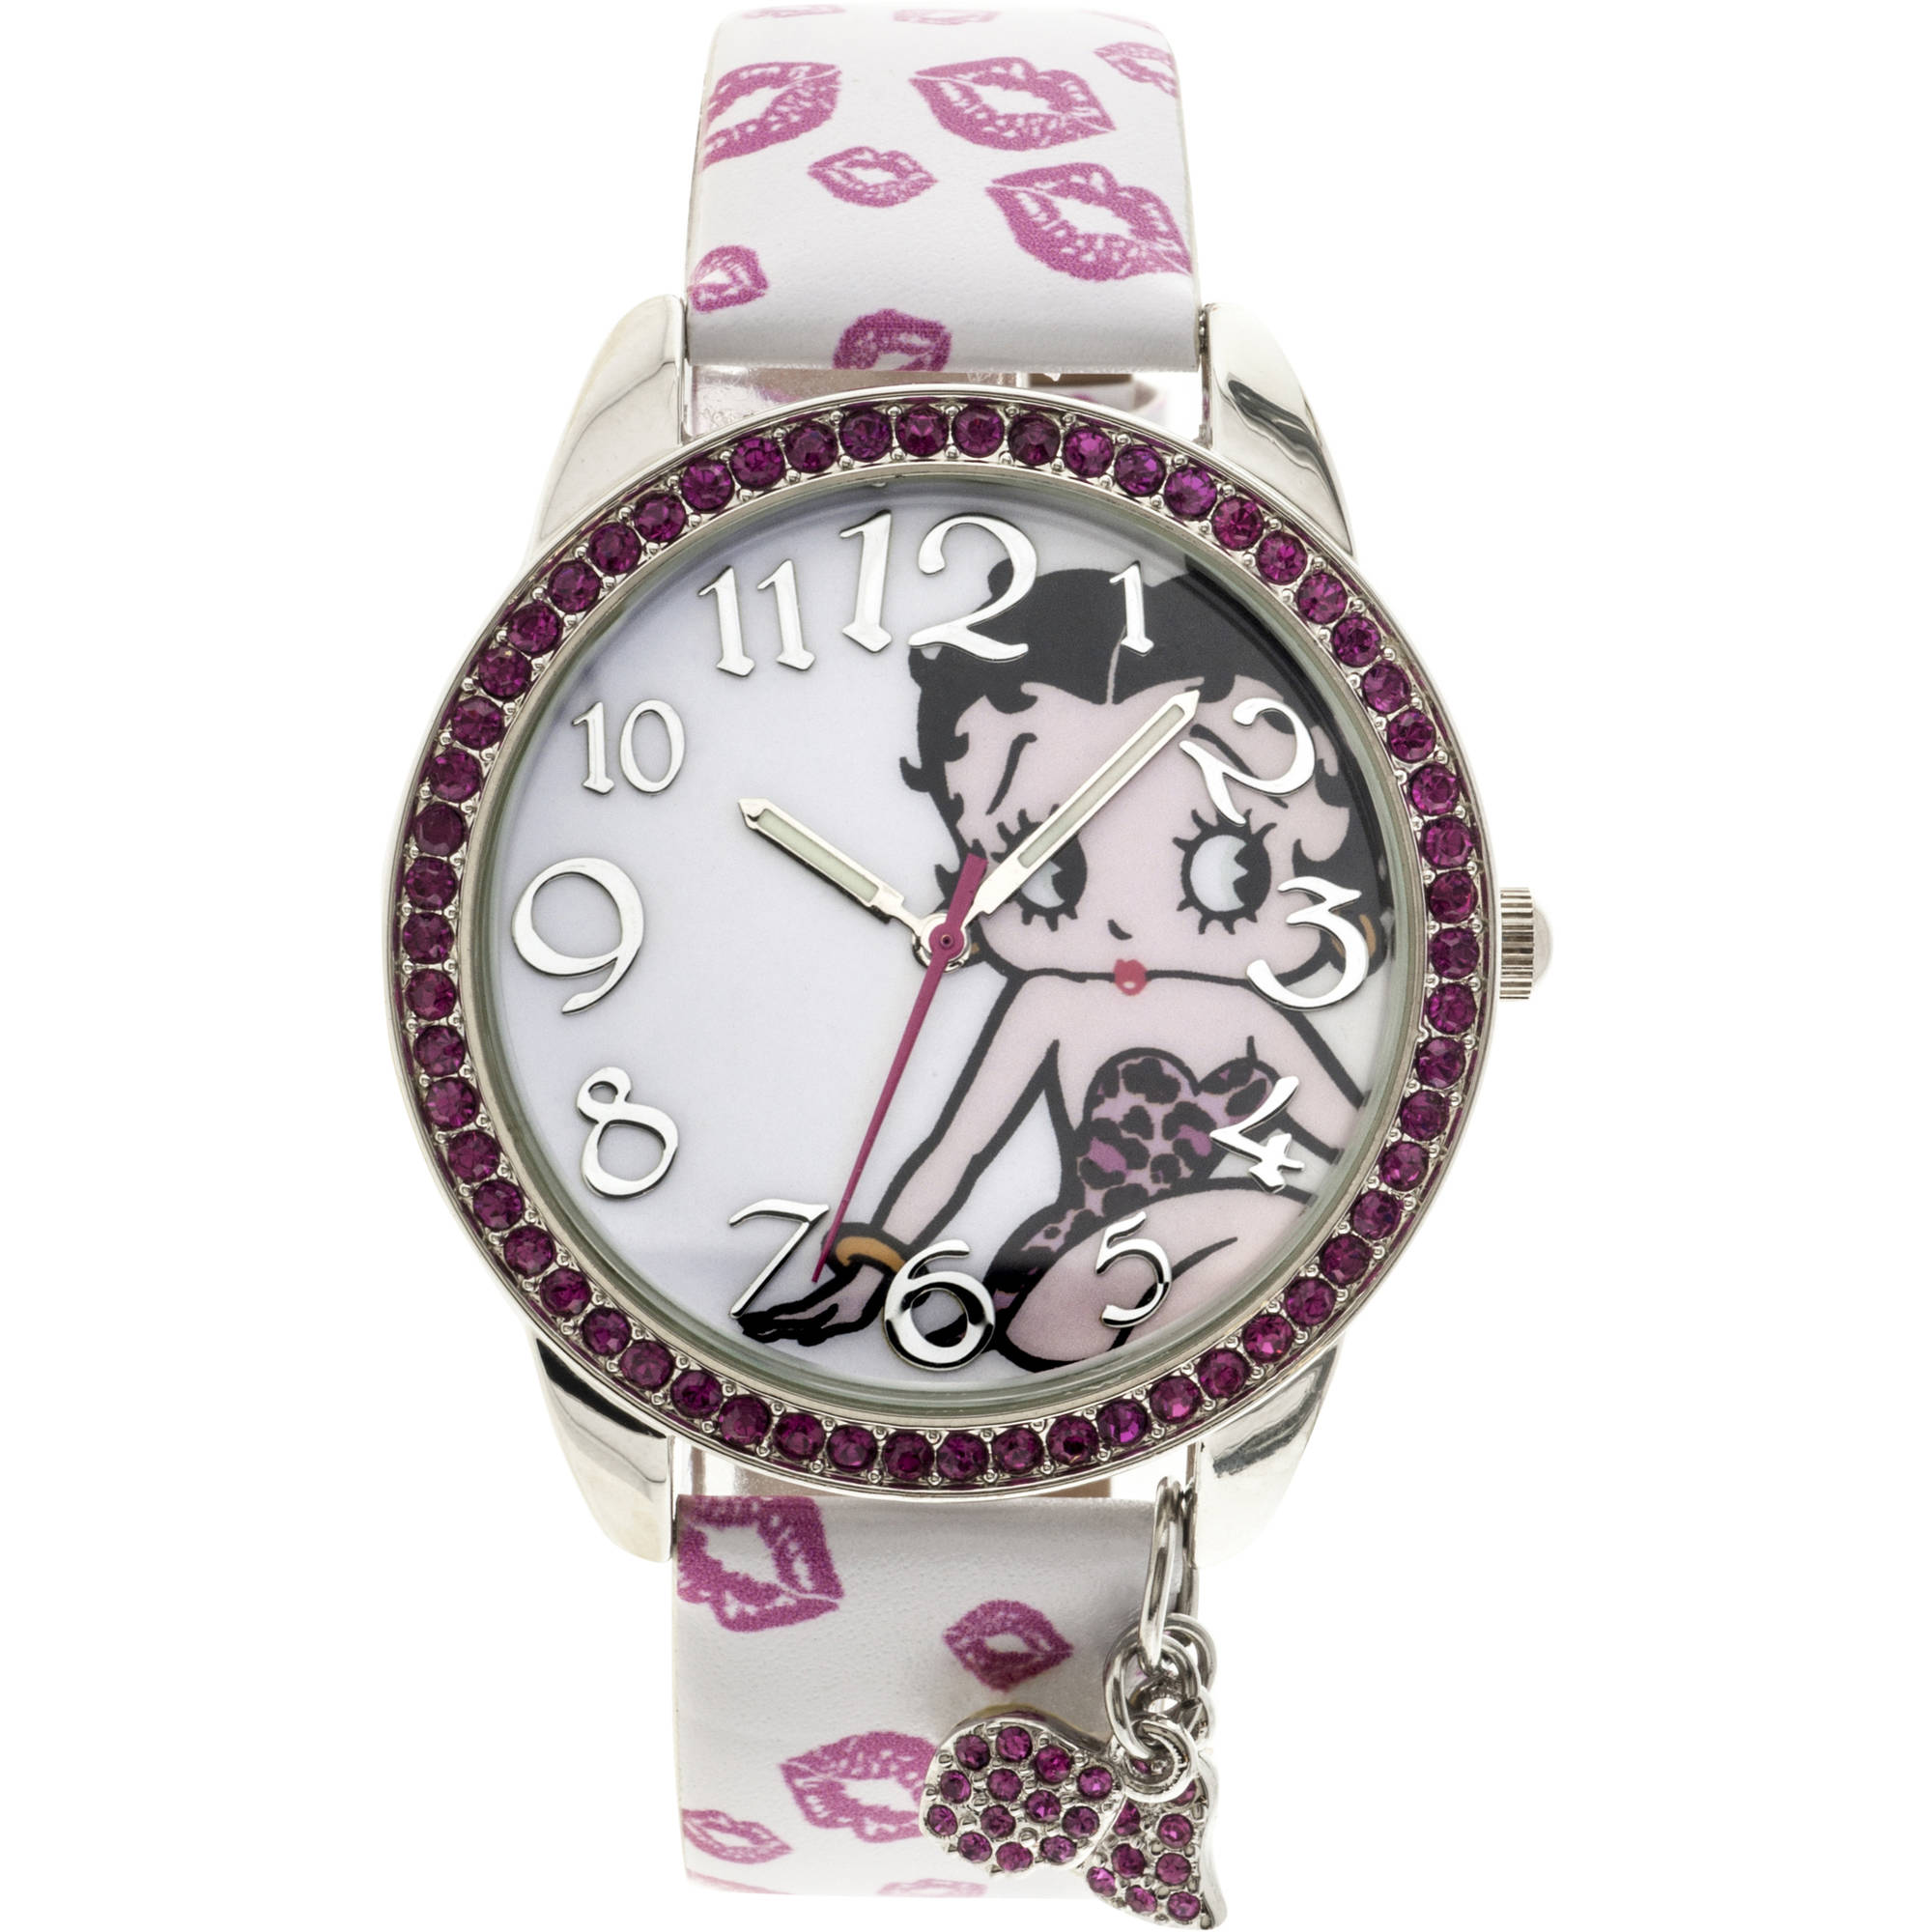 Betty Boop Pink Stone Case With Dangling Charms Character Printed Dial Analog Watch White